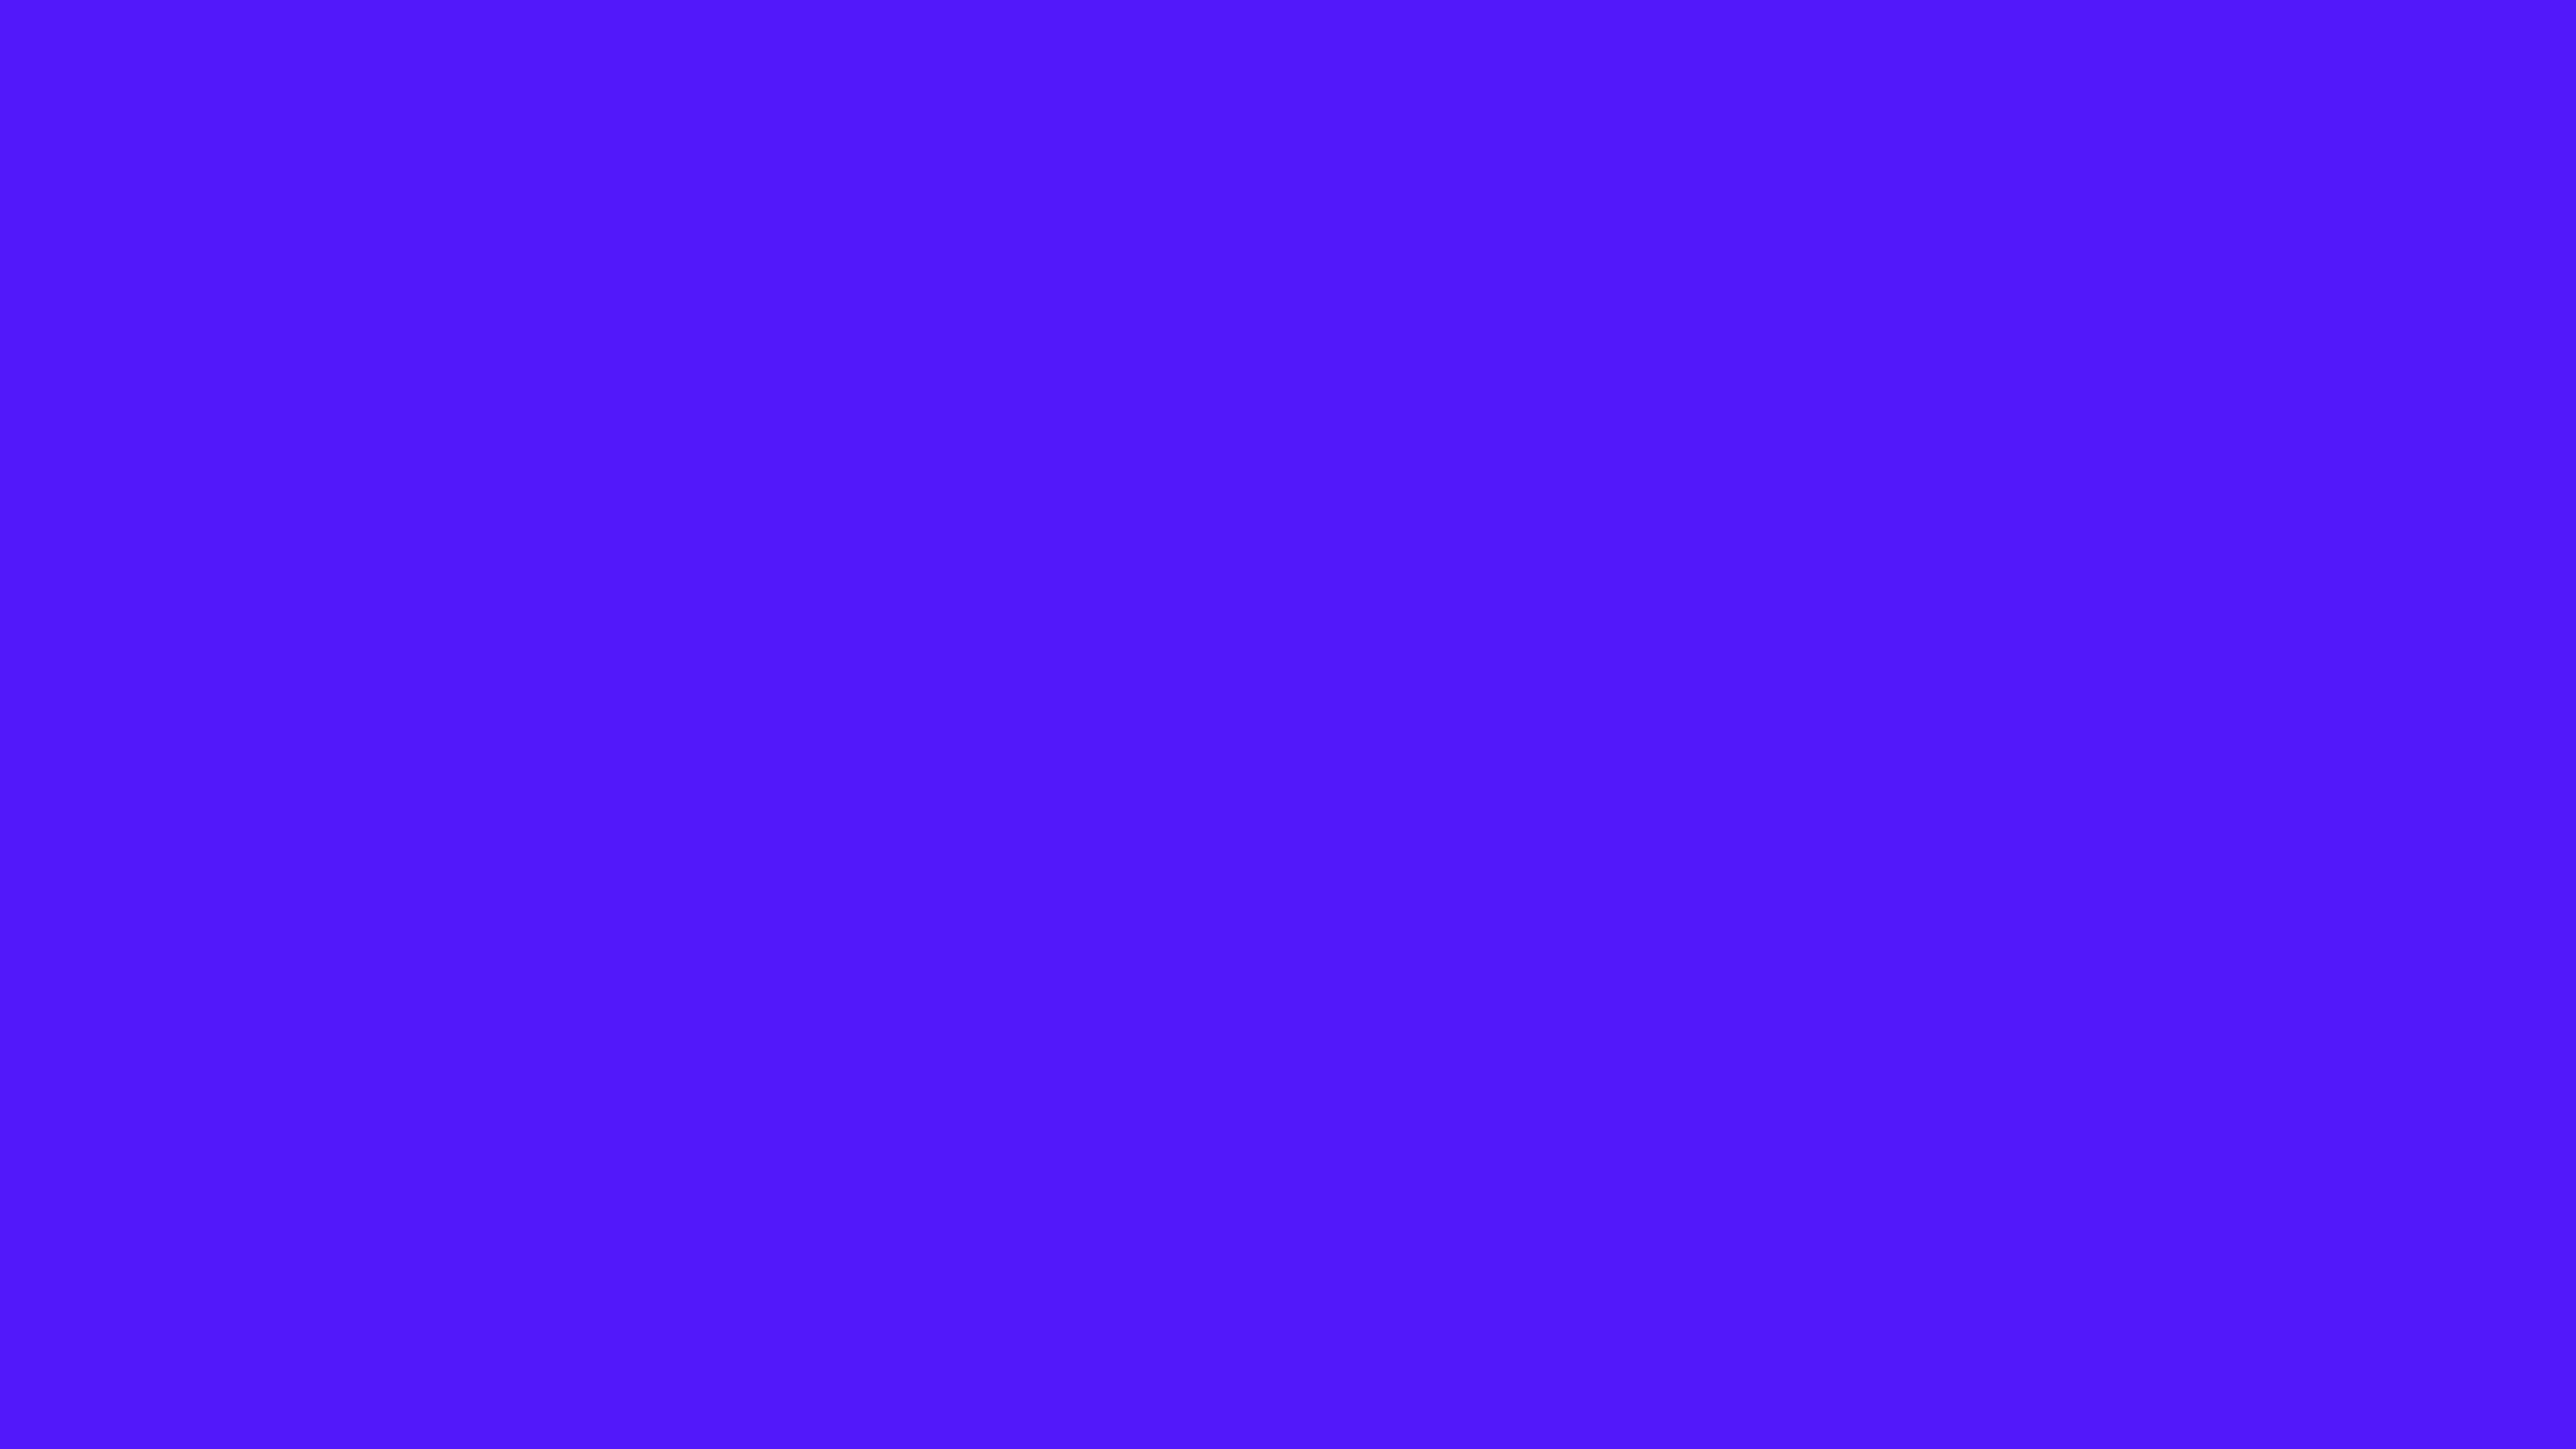 3840x2160 Han Purple Solid Color Background